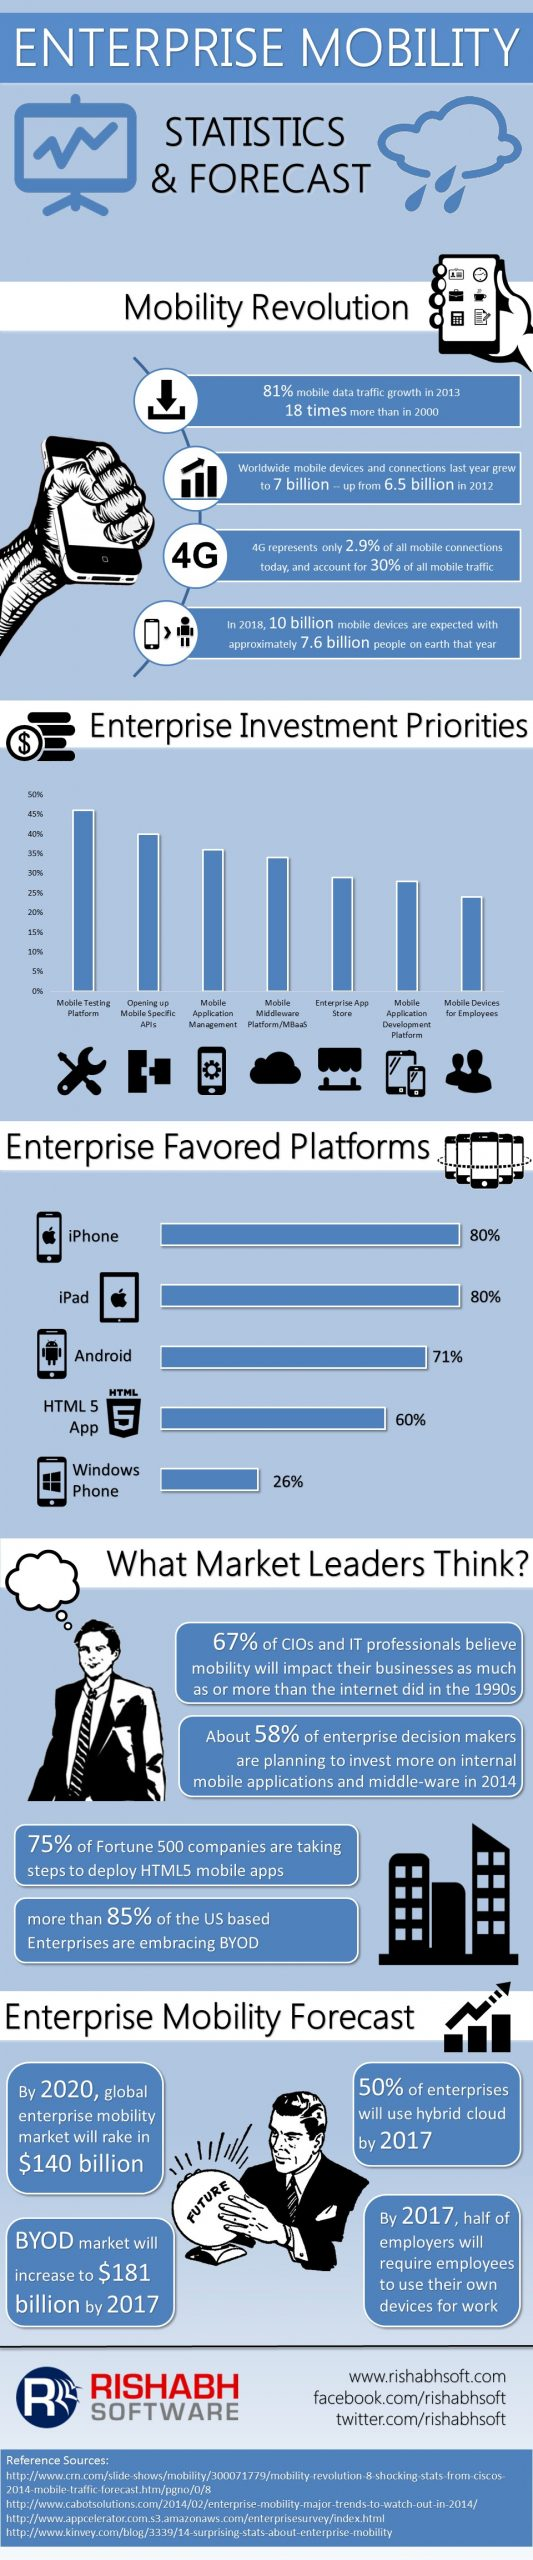 Enterprise-Mobility-Infographic